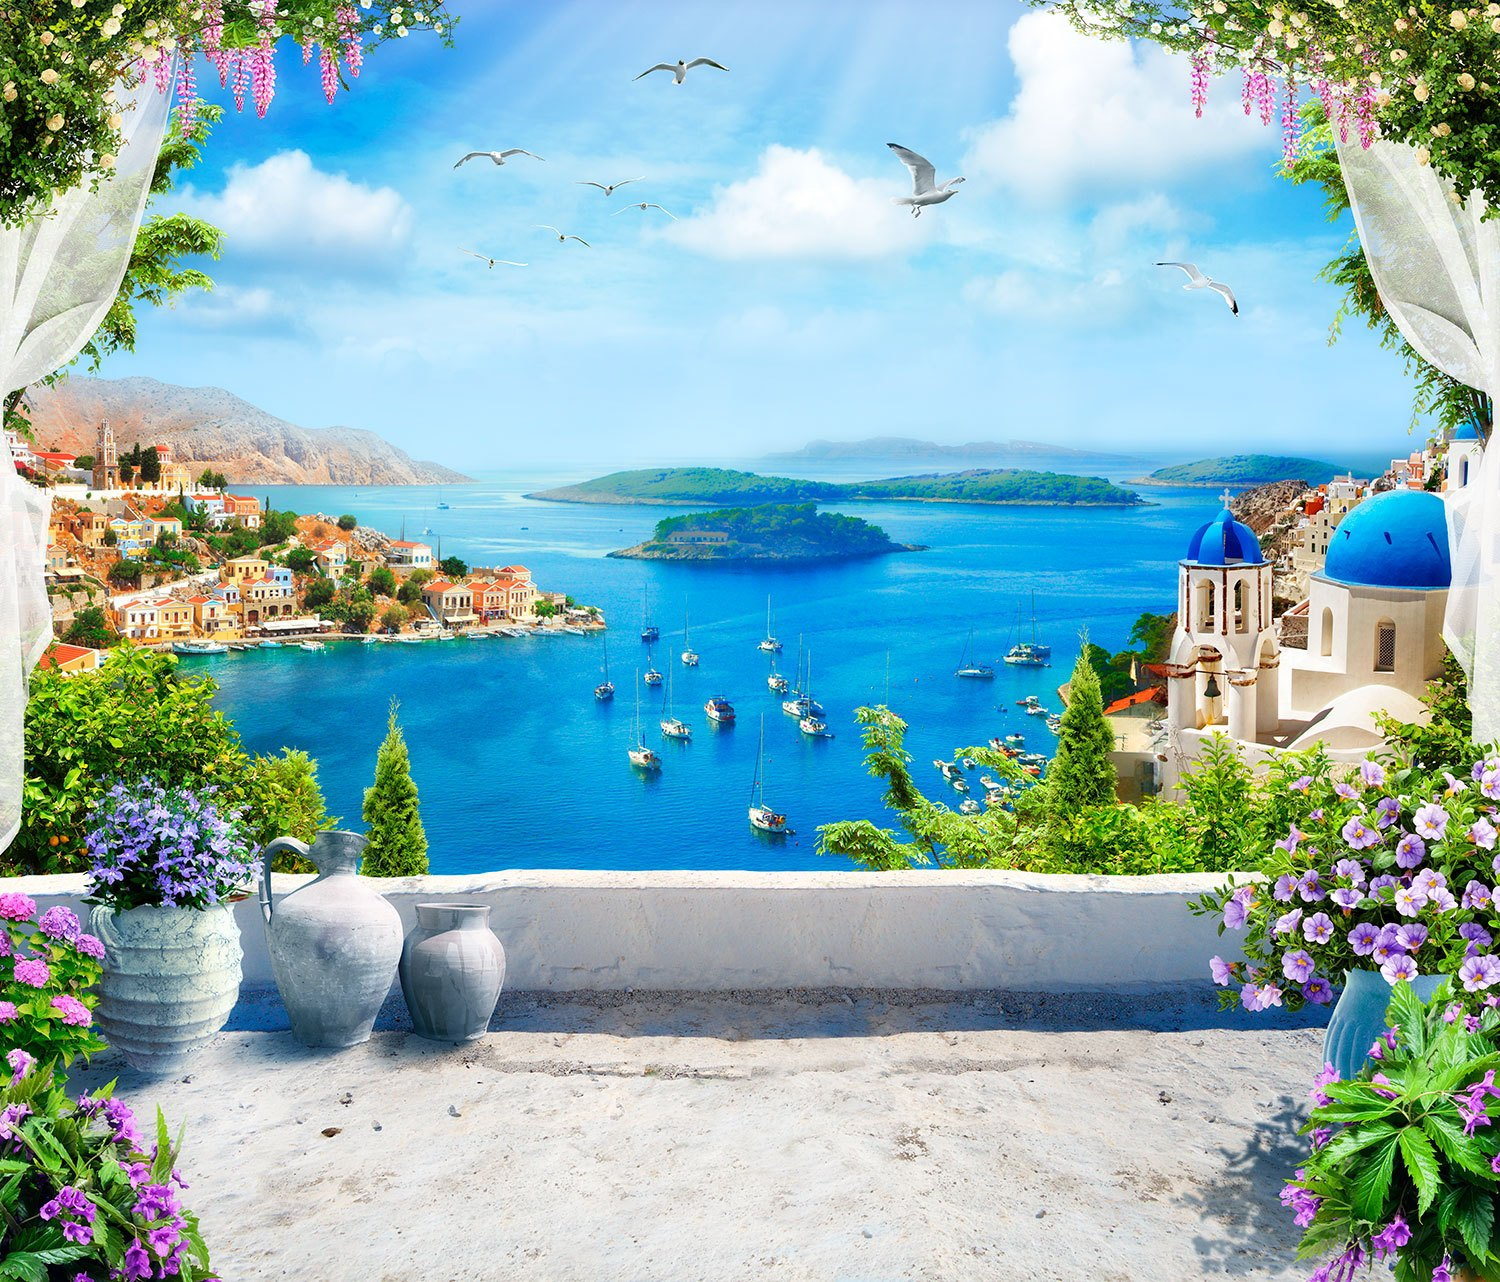 Wall Murals: Balcony to the Aegean